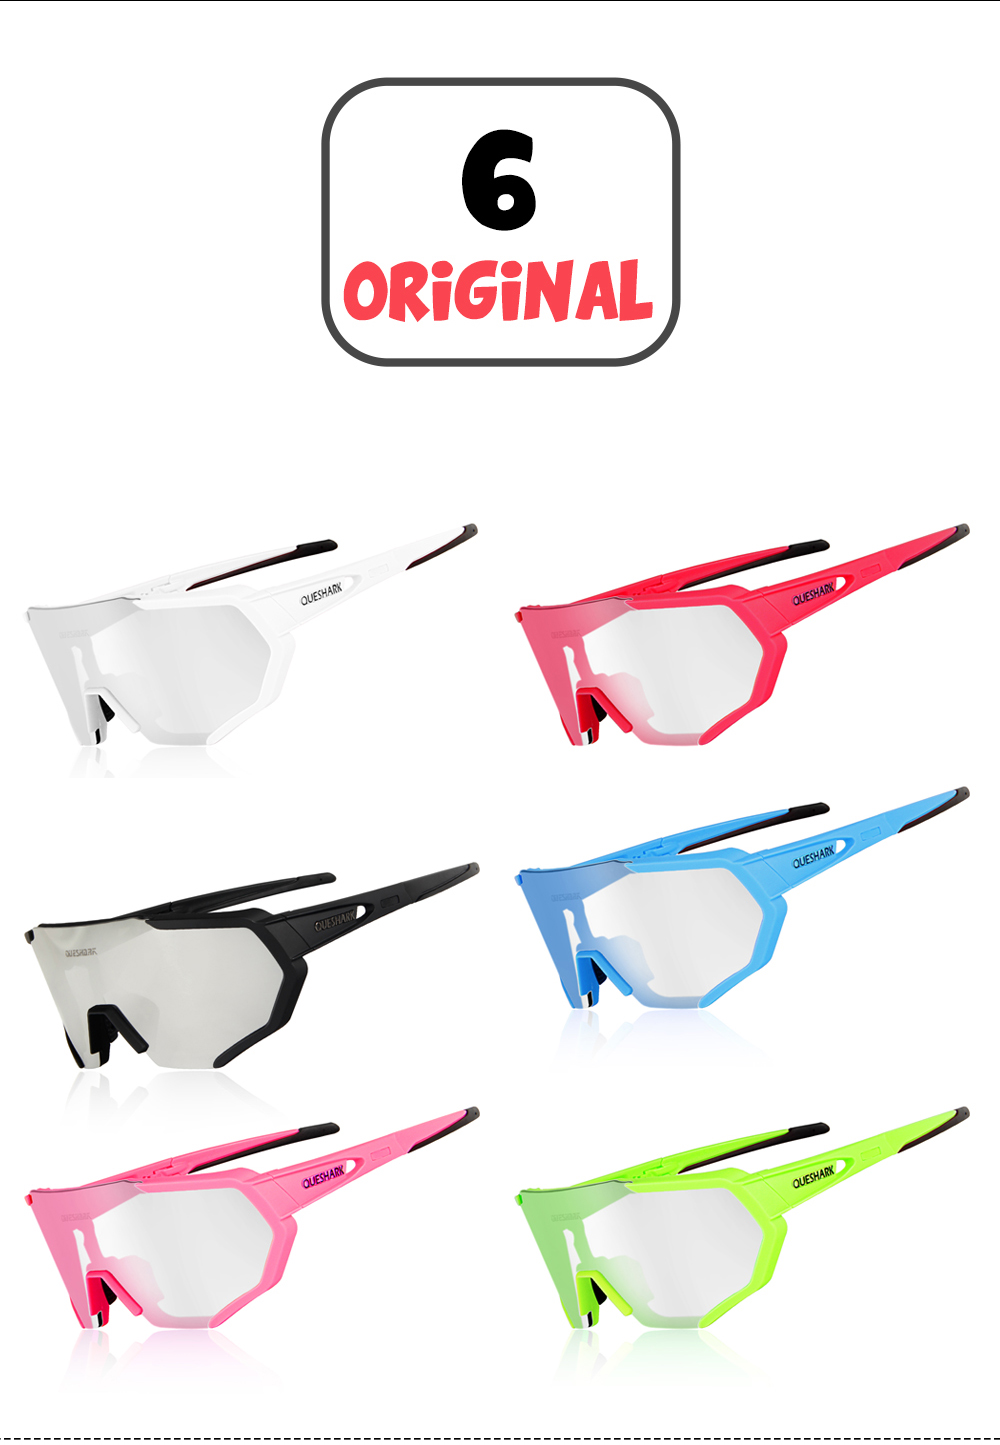 83a34e5097 1 Cleaning soft fabric sunglasses pouch 1 sunglasses Frame 1 Black Polarized  Lens 1 Full coating Lens(as the main photo showed) 1 Clear Lens